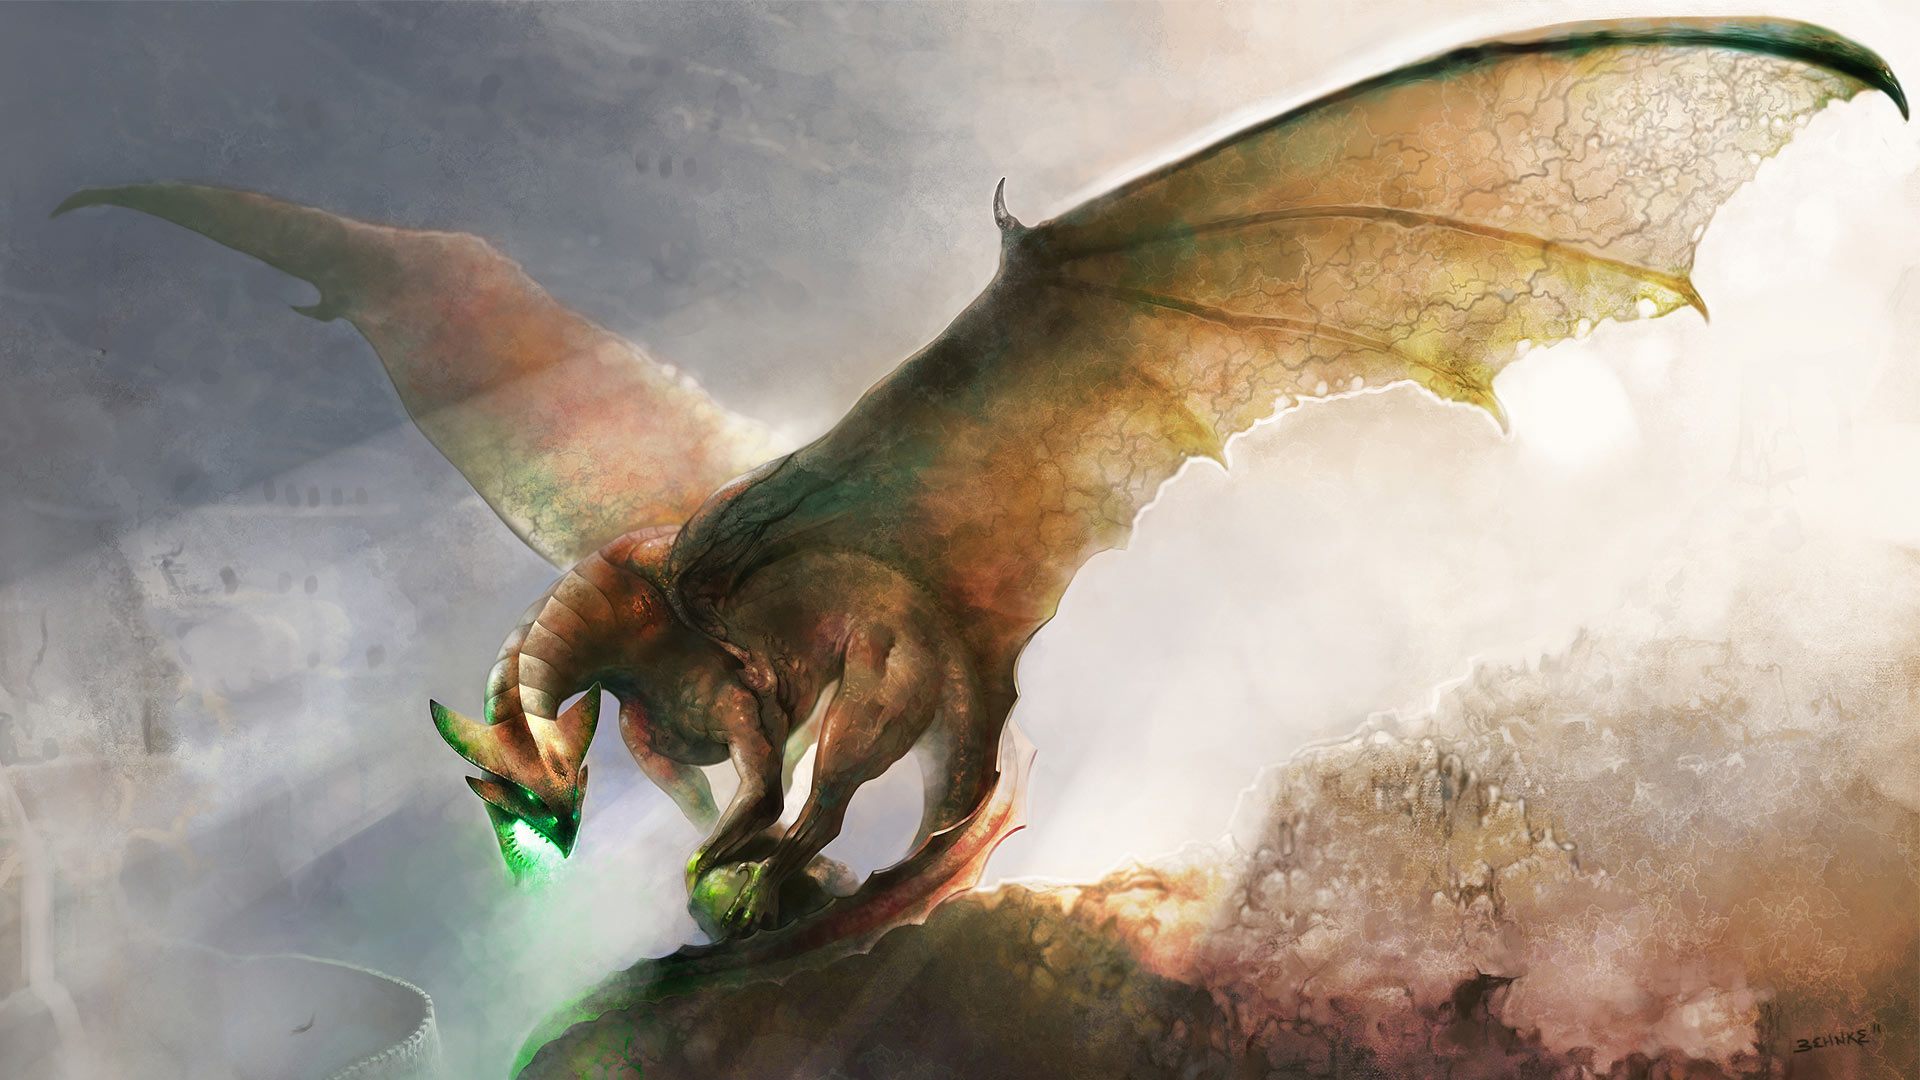 Copper dragon widescreen wallpaper wallpapers hunt.com